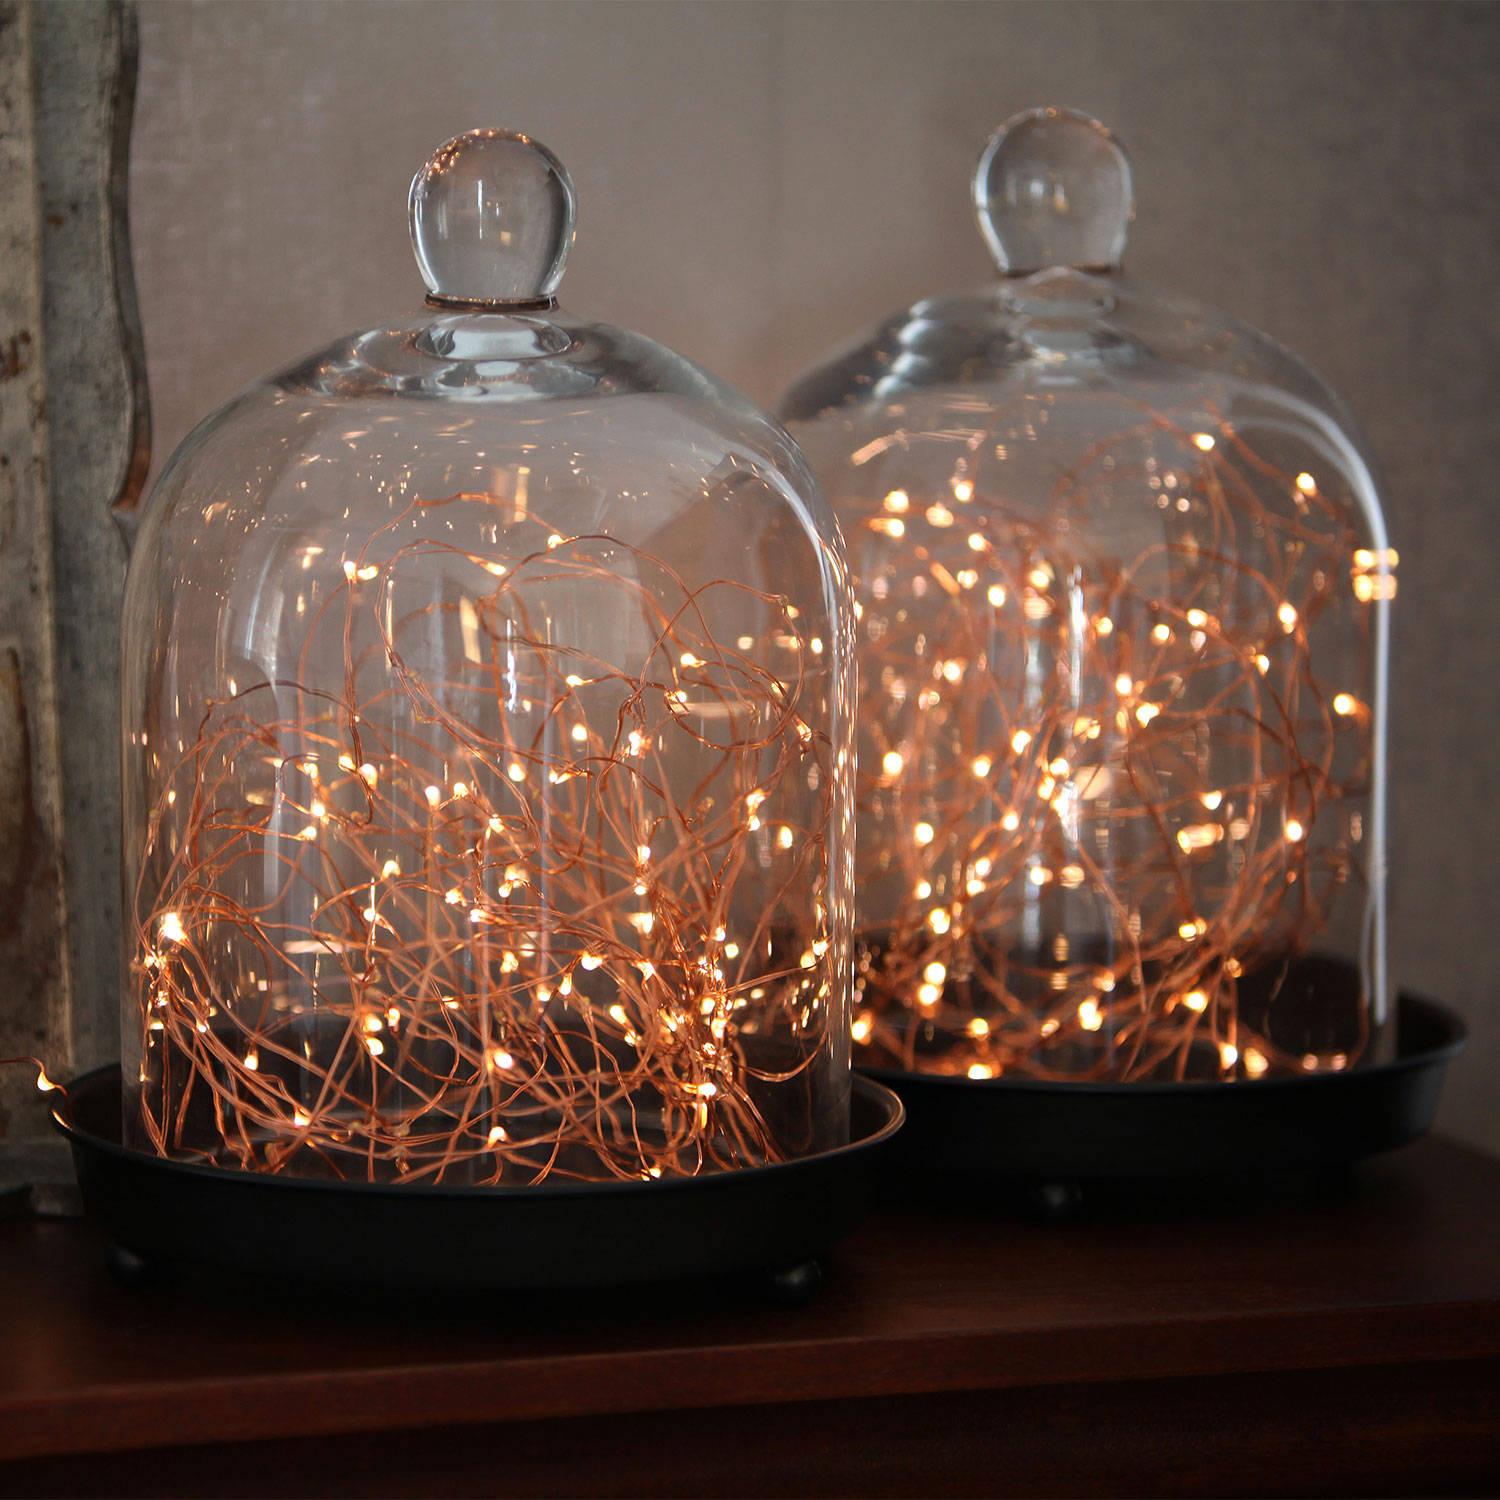 Copper Patio String Lights : Lights.com String Lights Fairy Lights 300 Warm White Starry LED Copper Wire Plug-in String ...